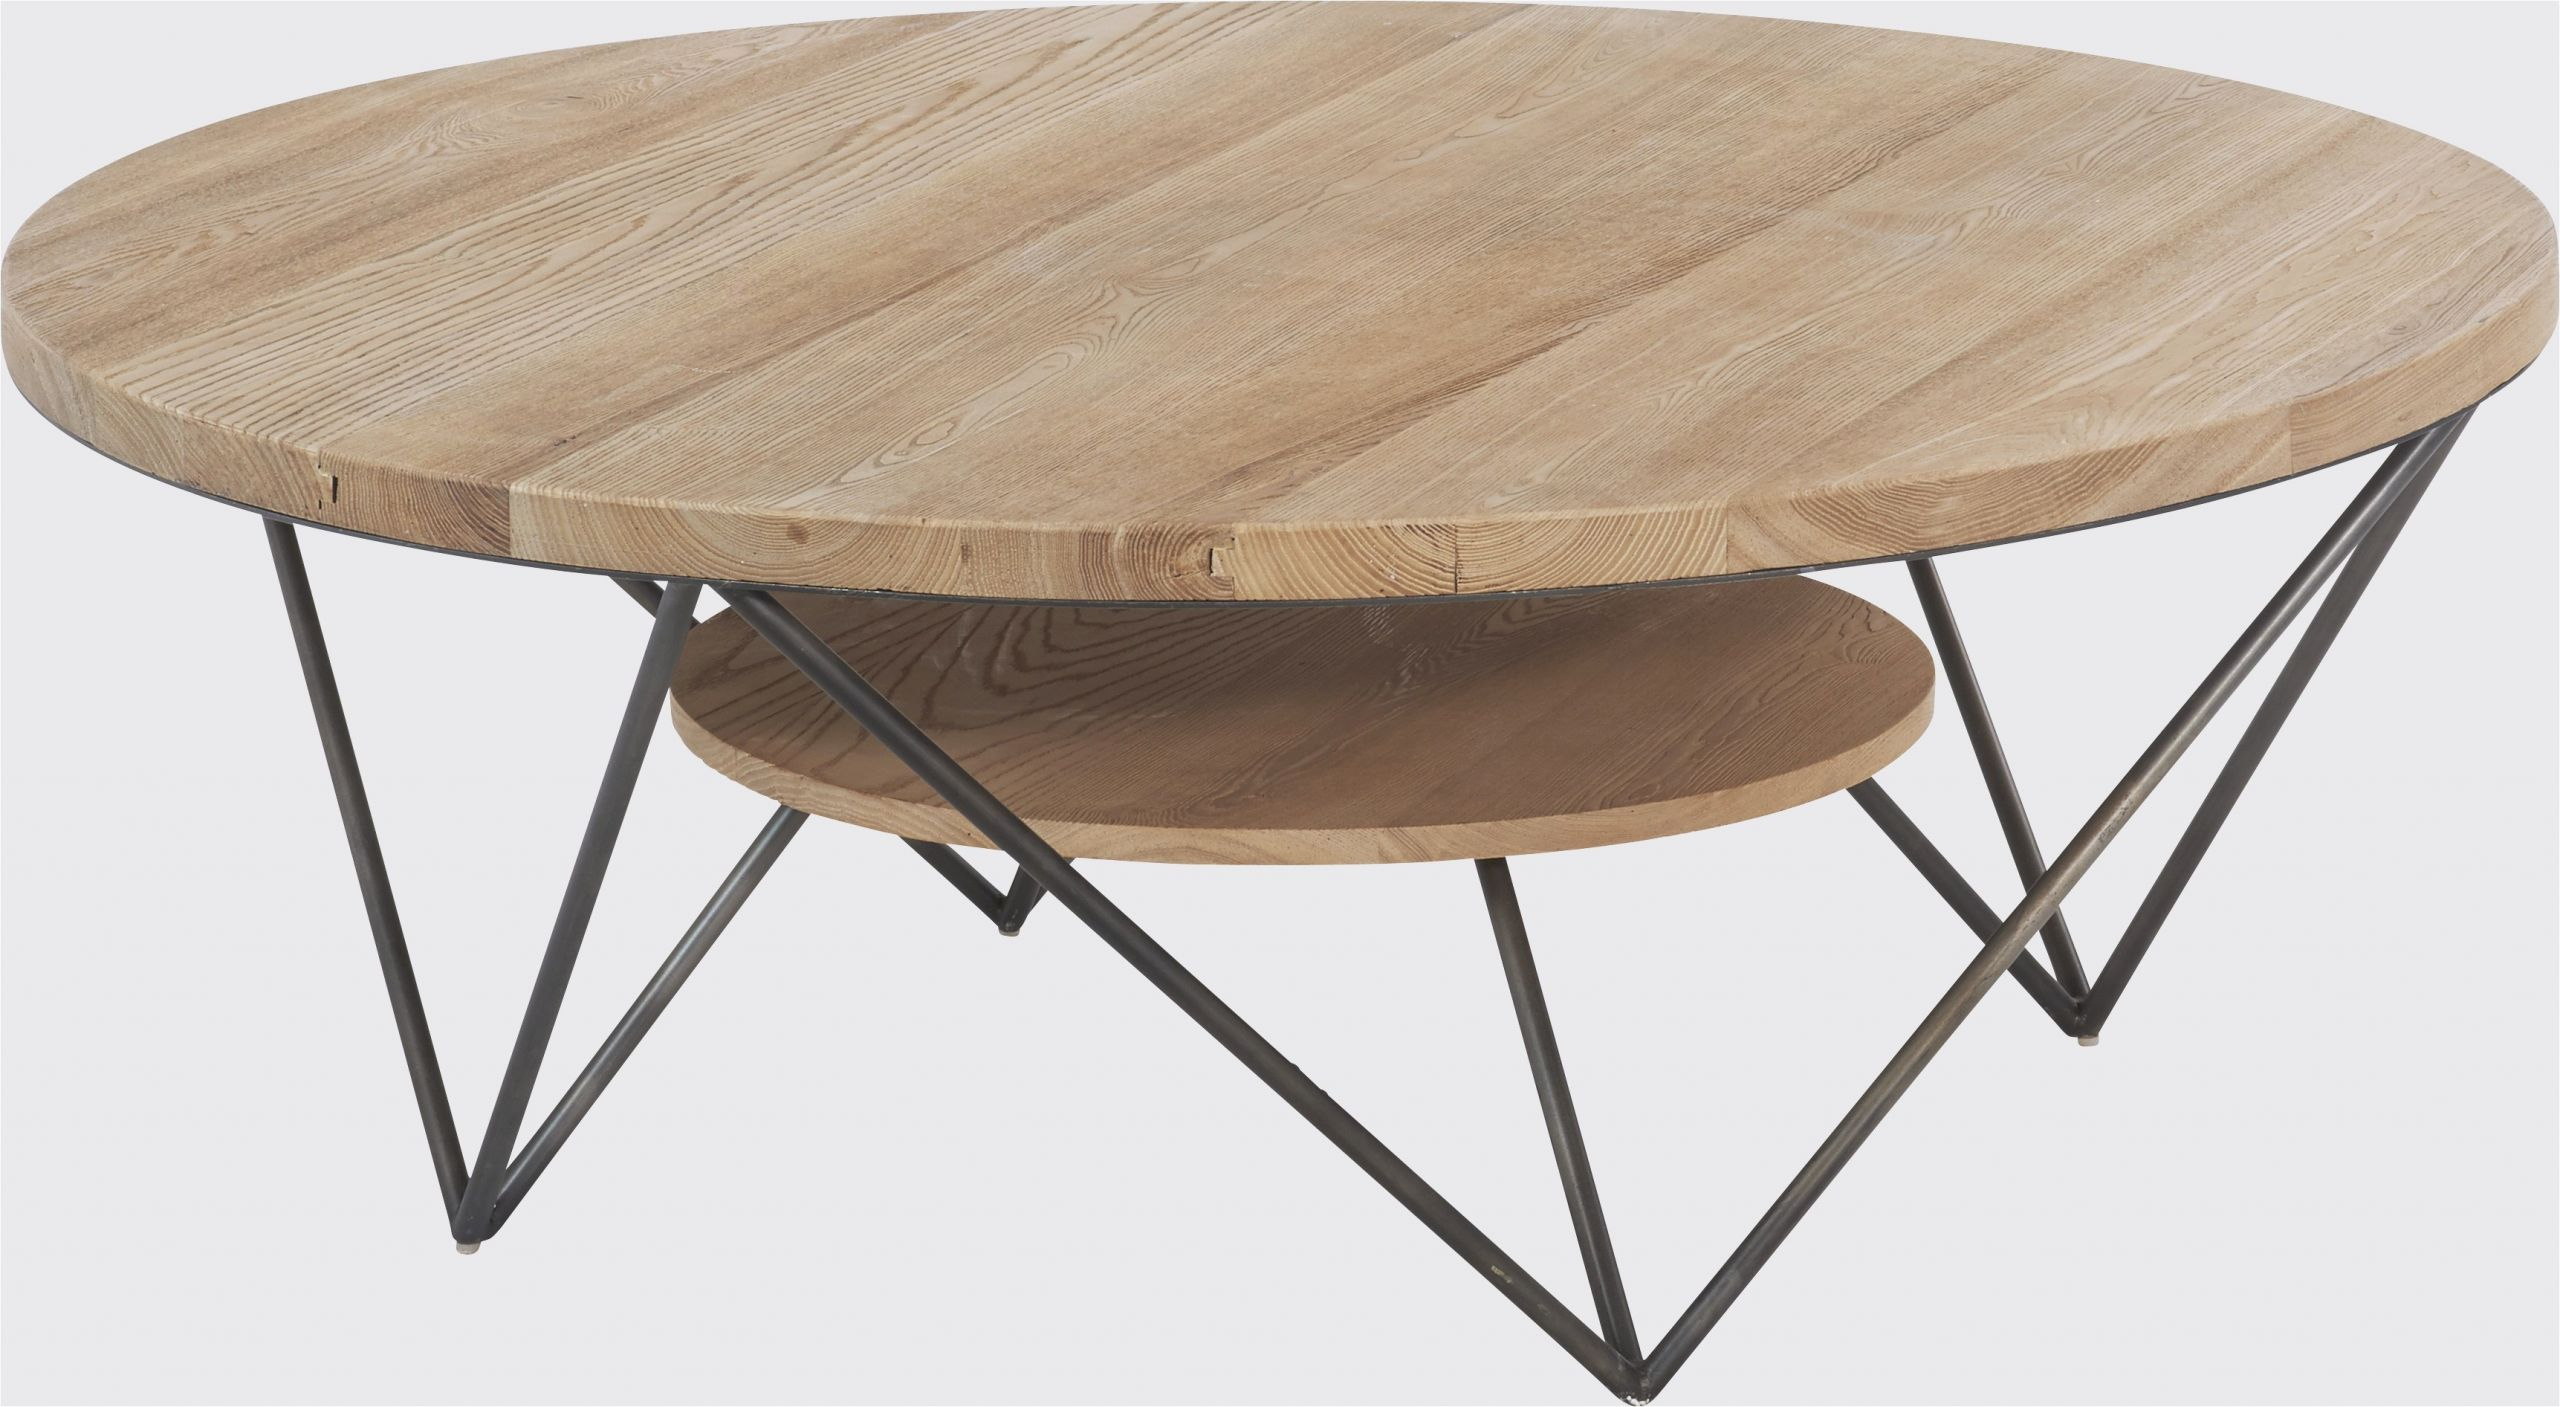 table jardin alinea inspire table alinea bois table bois brut elegant table bois 0d archives of table jardin alinea